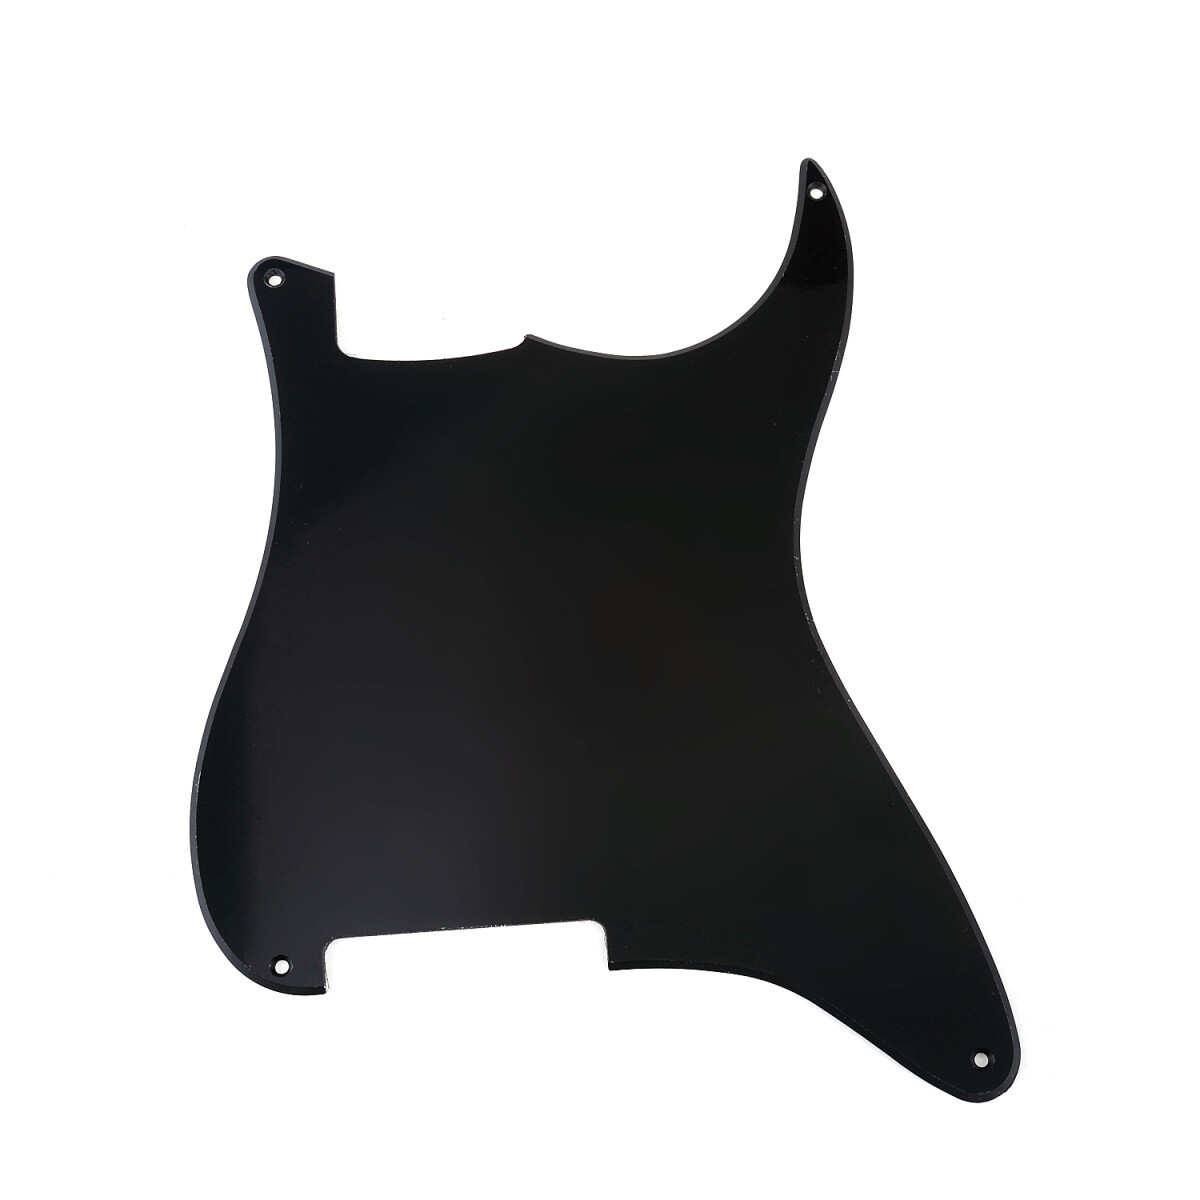 Brio Blank 4 hole outline pickguard for Strat®, 1 Ply Glossy Black